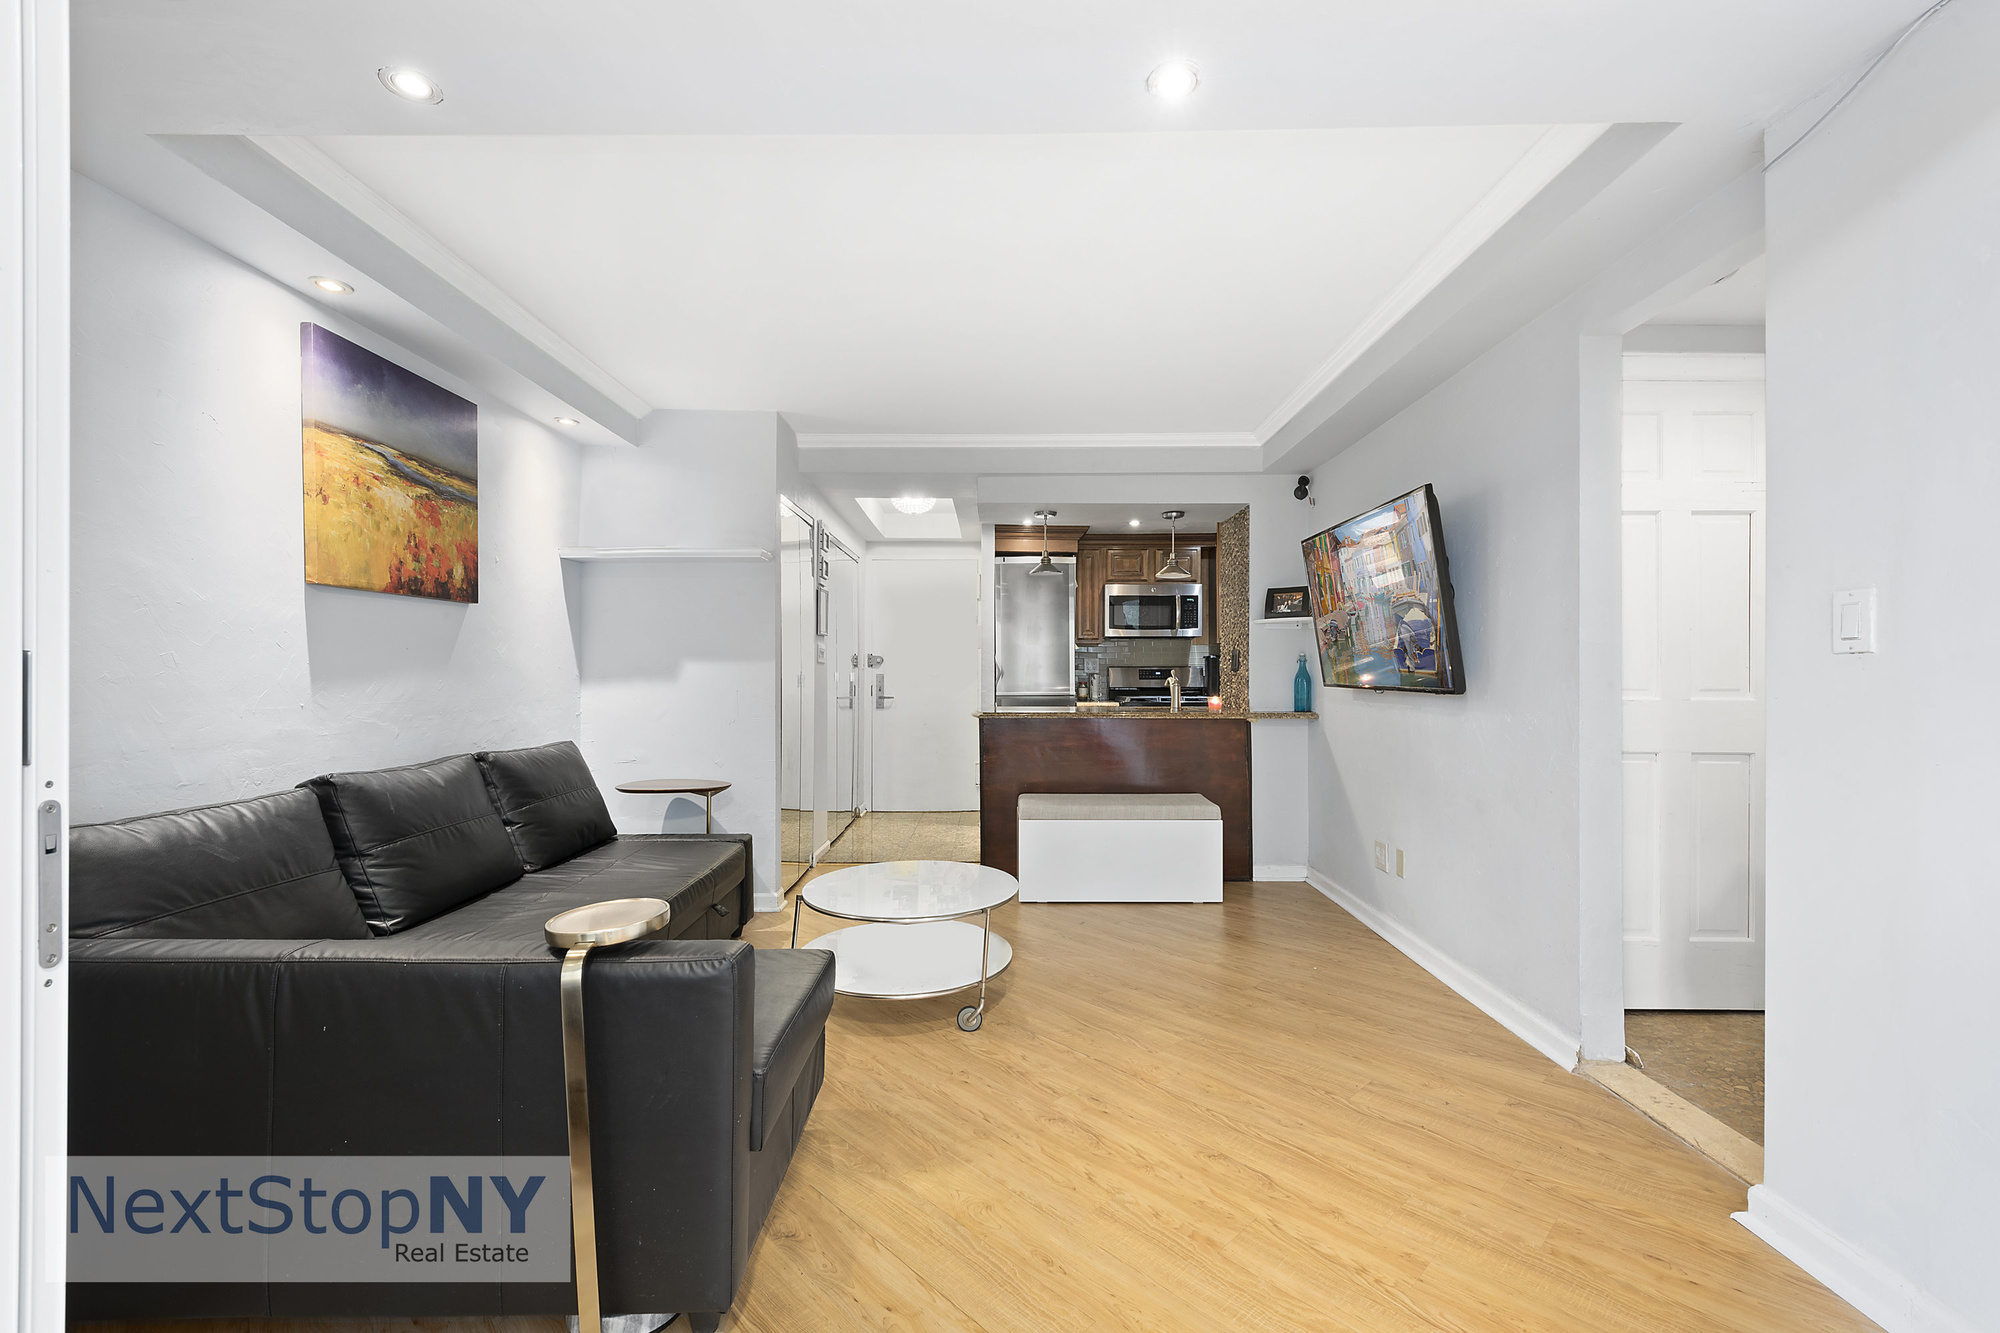 Apartment for sale at 240 East 55th Street, Apt 6F